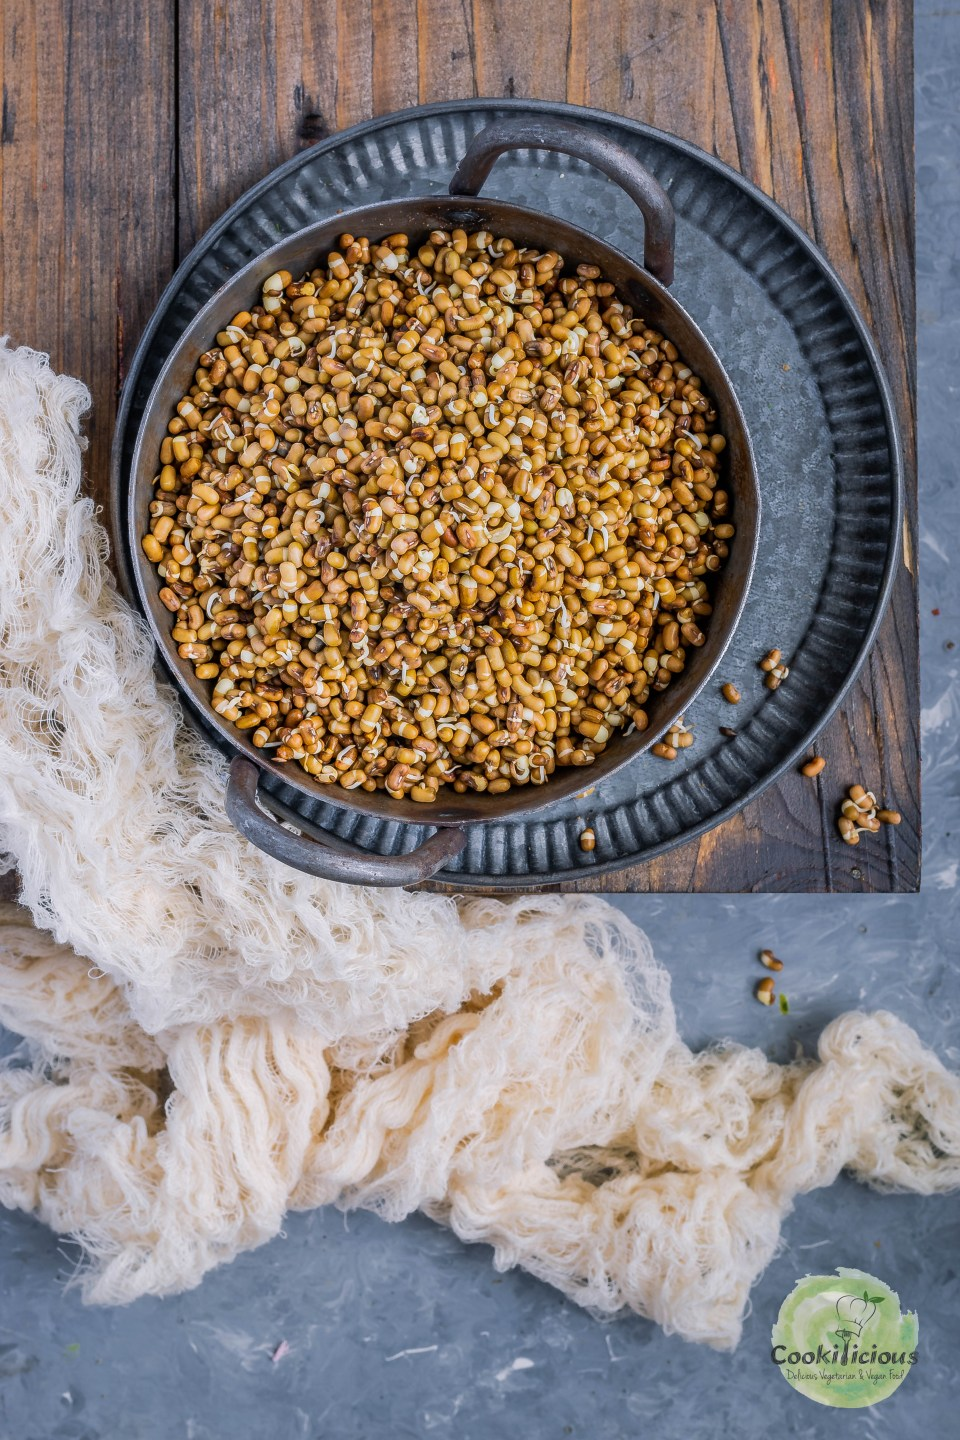 moth beans or matki sprouts in a kadai